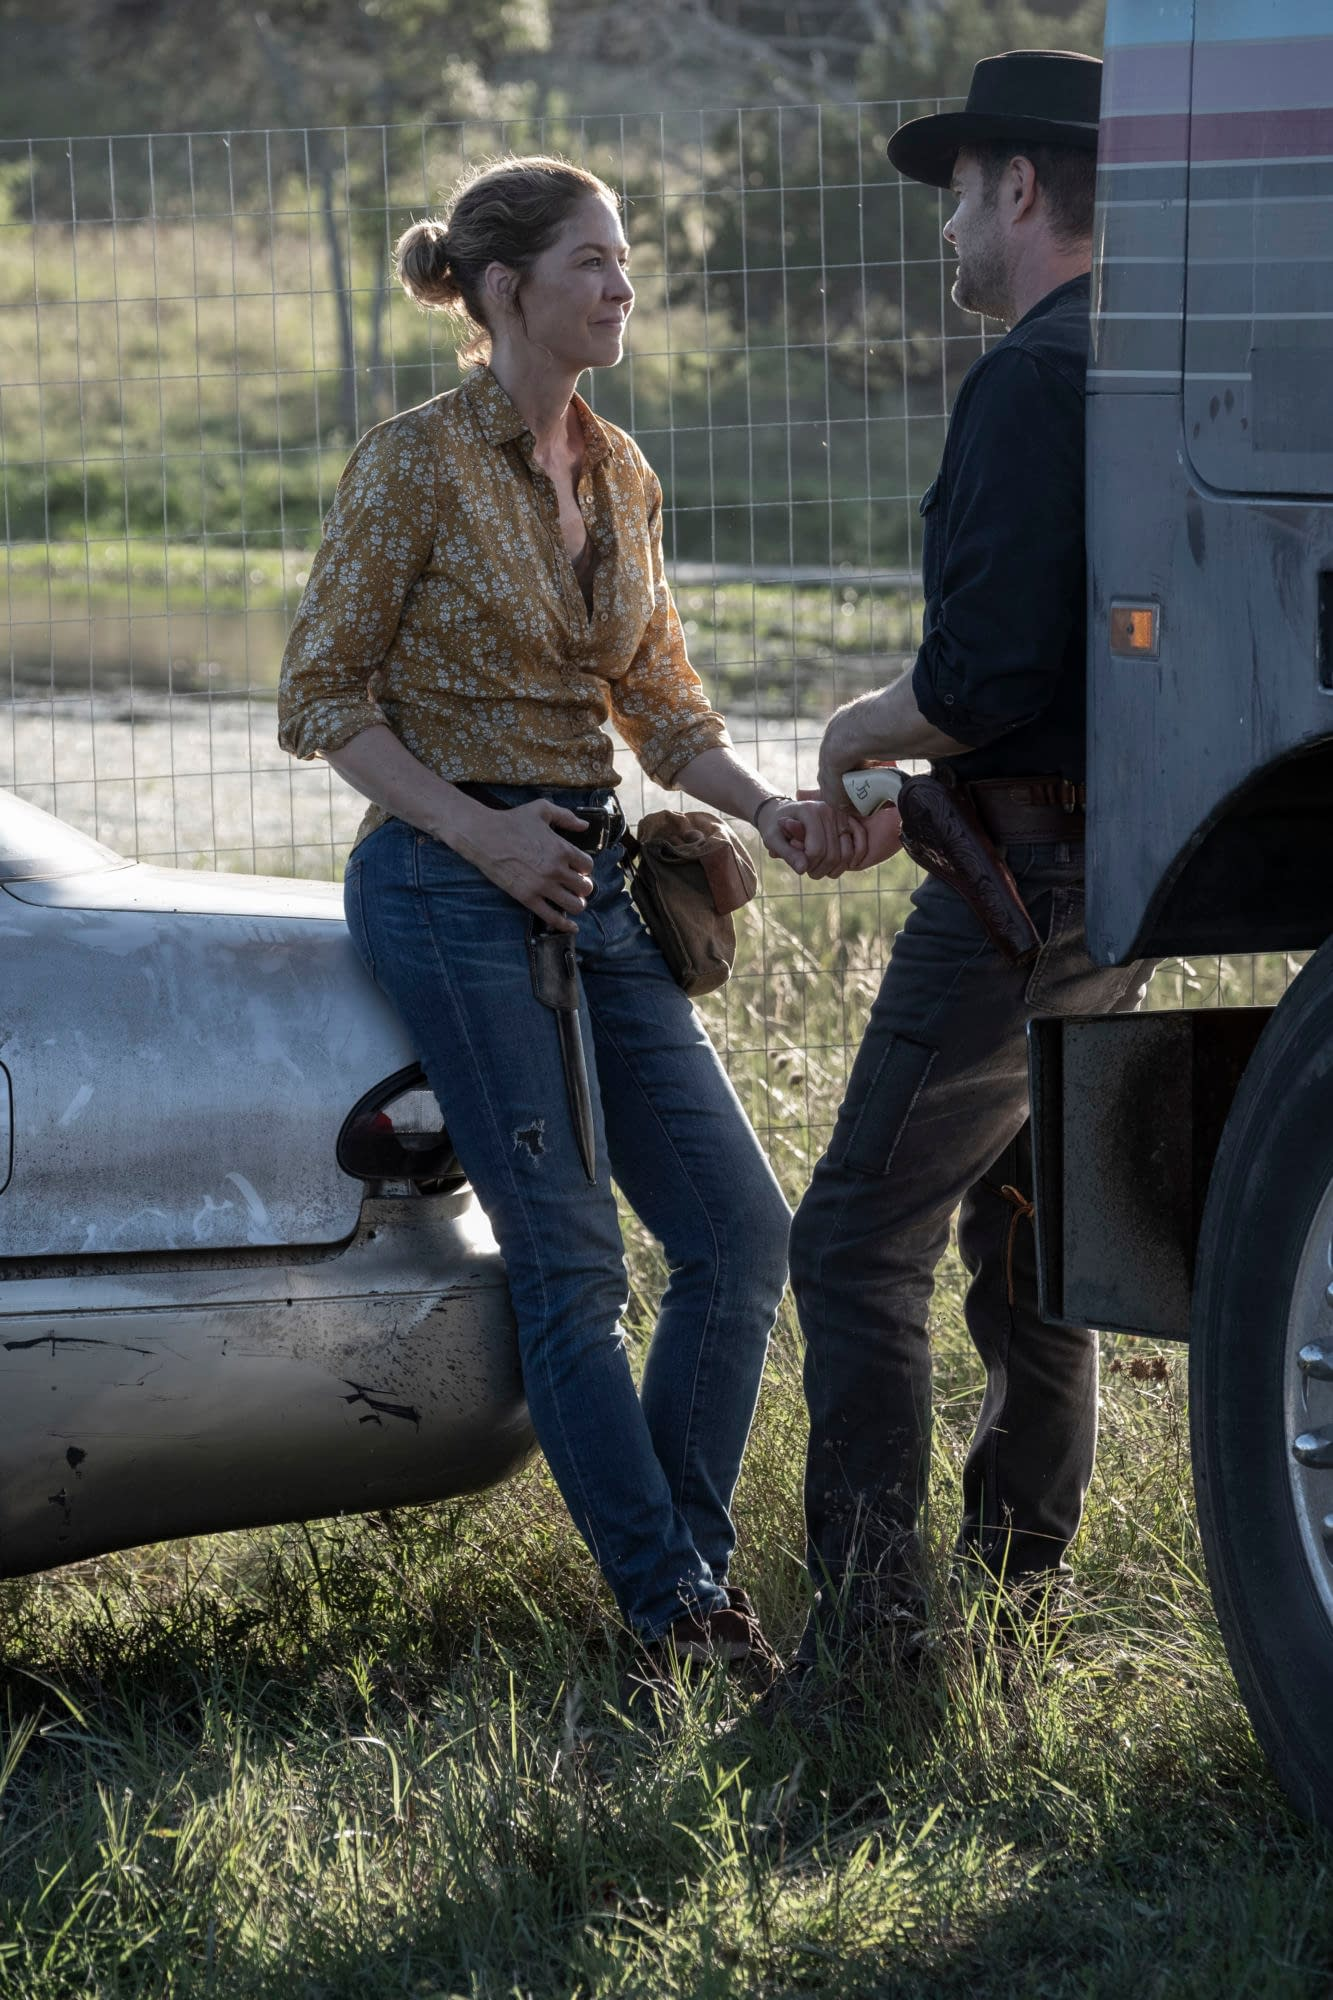 """""""Fear the Walking Dead"""" Season 5, Episode 15 """"Channel 5"""": Will Ginny's Way Be Our Heroes' Only Way? [PREVIEW]"""